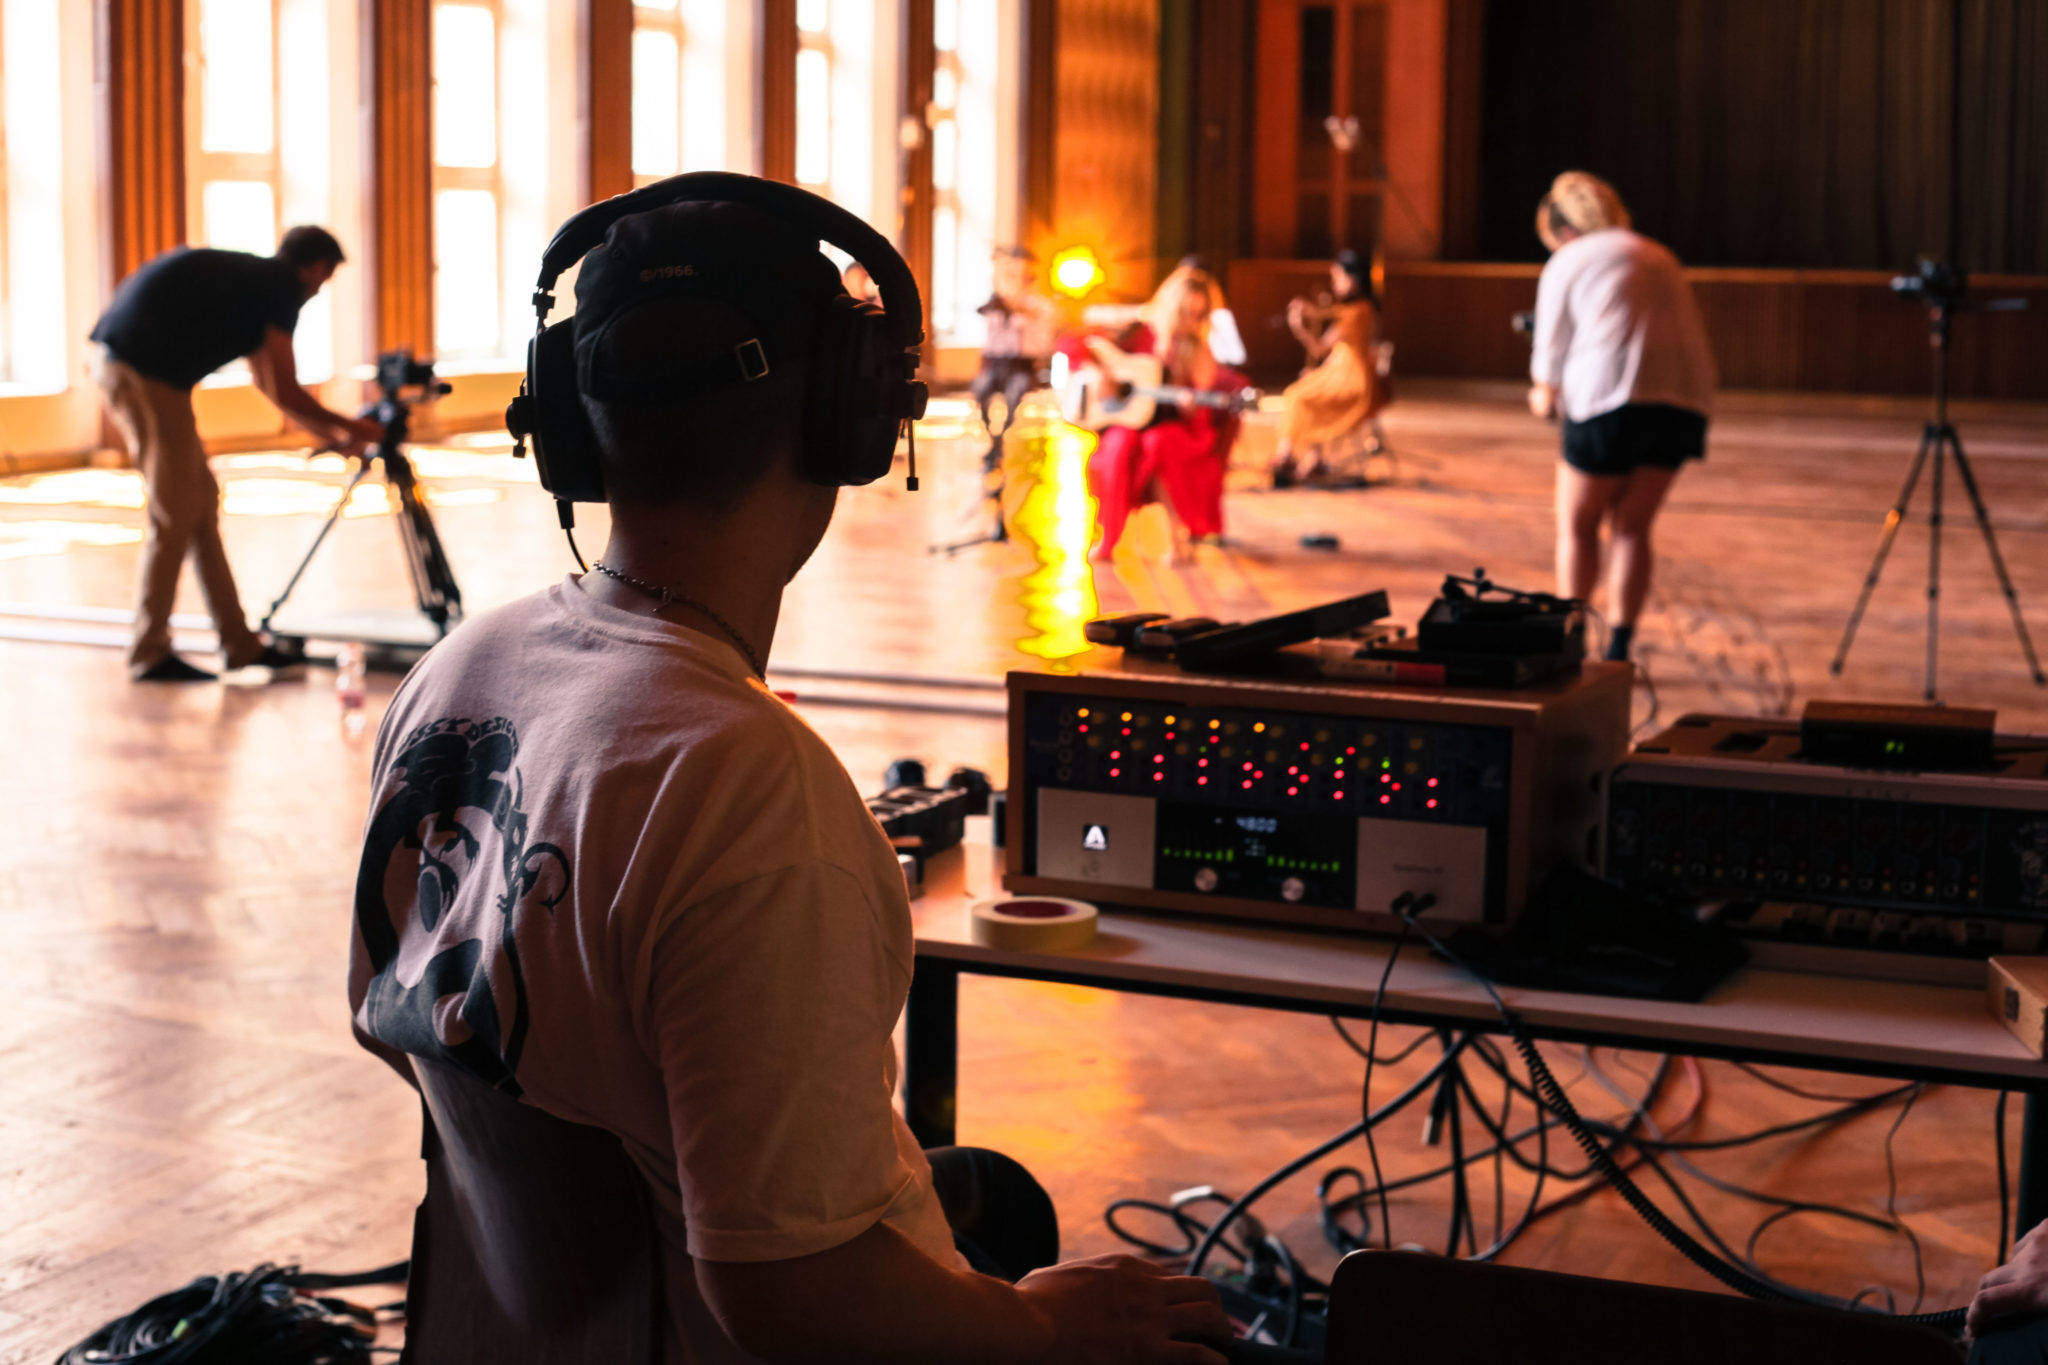 Sound Engineer & Producer Thorir Davidsson on Letting Learning Lead the Way